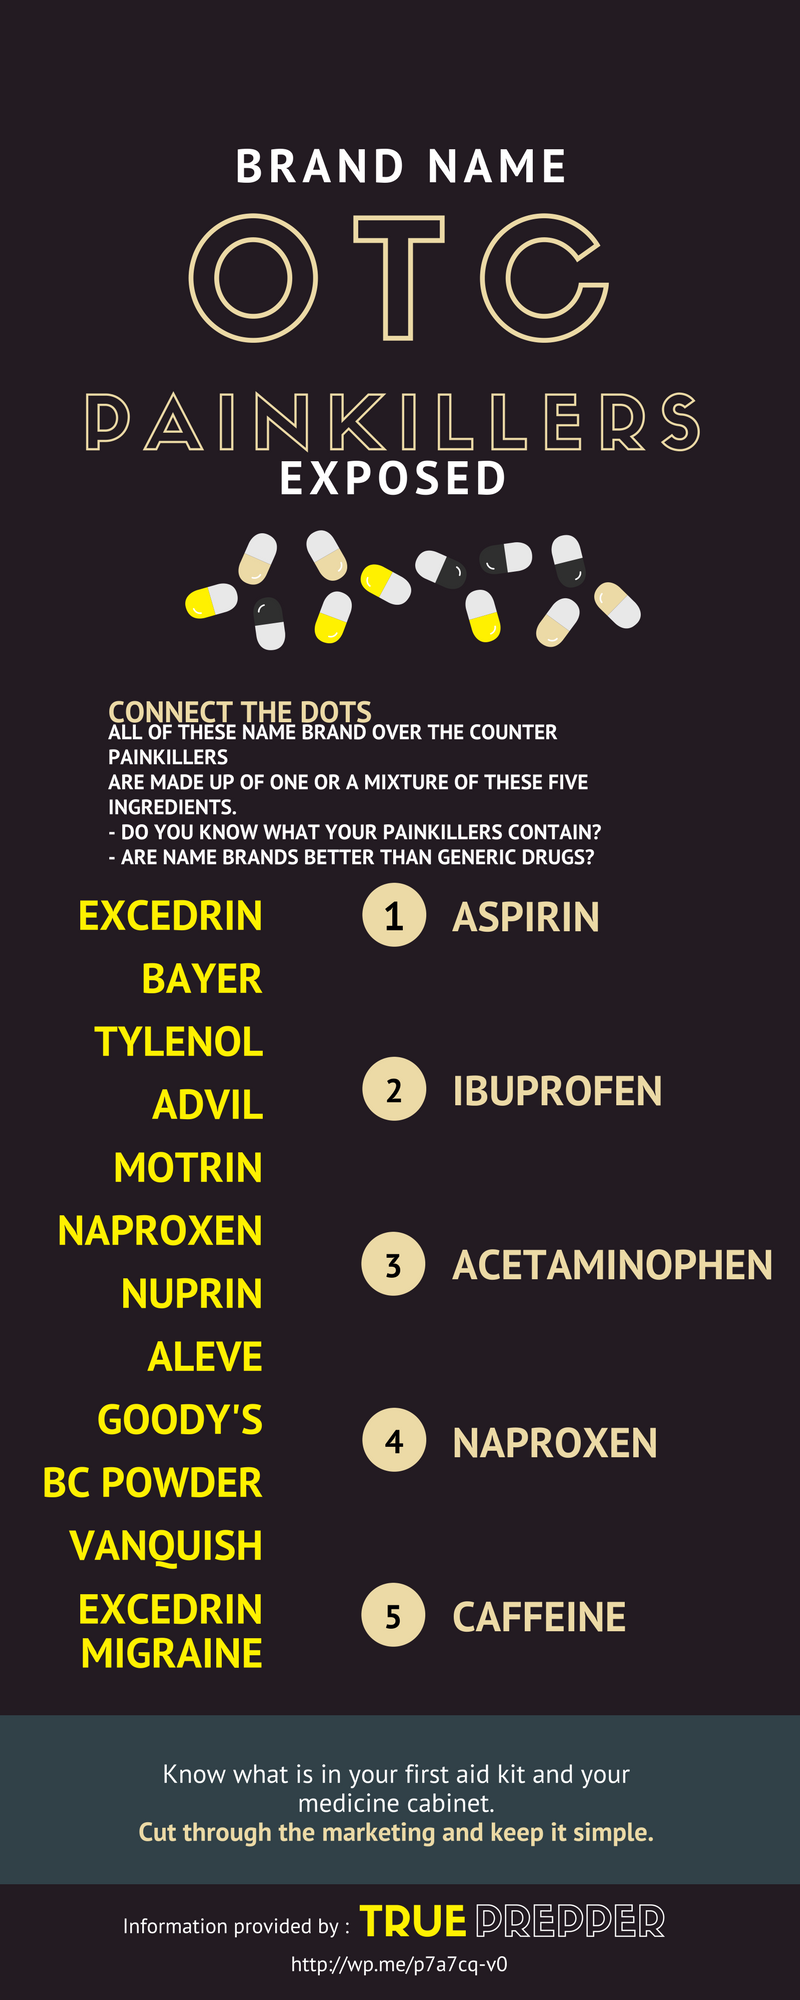 Brand Name OTC Painkillers Exposed